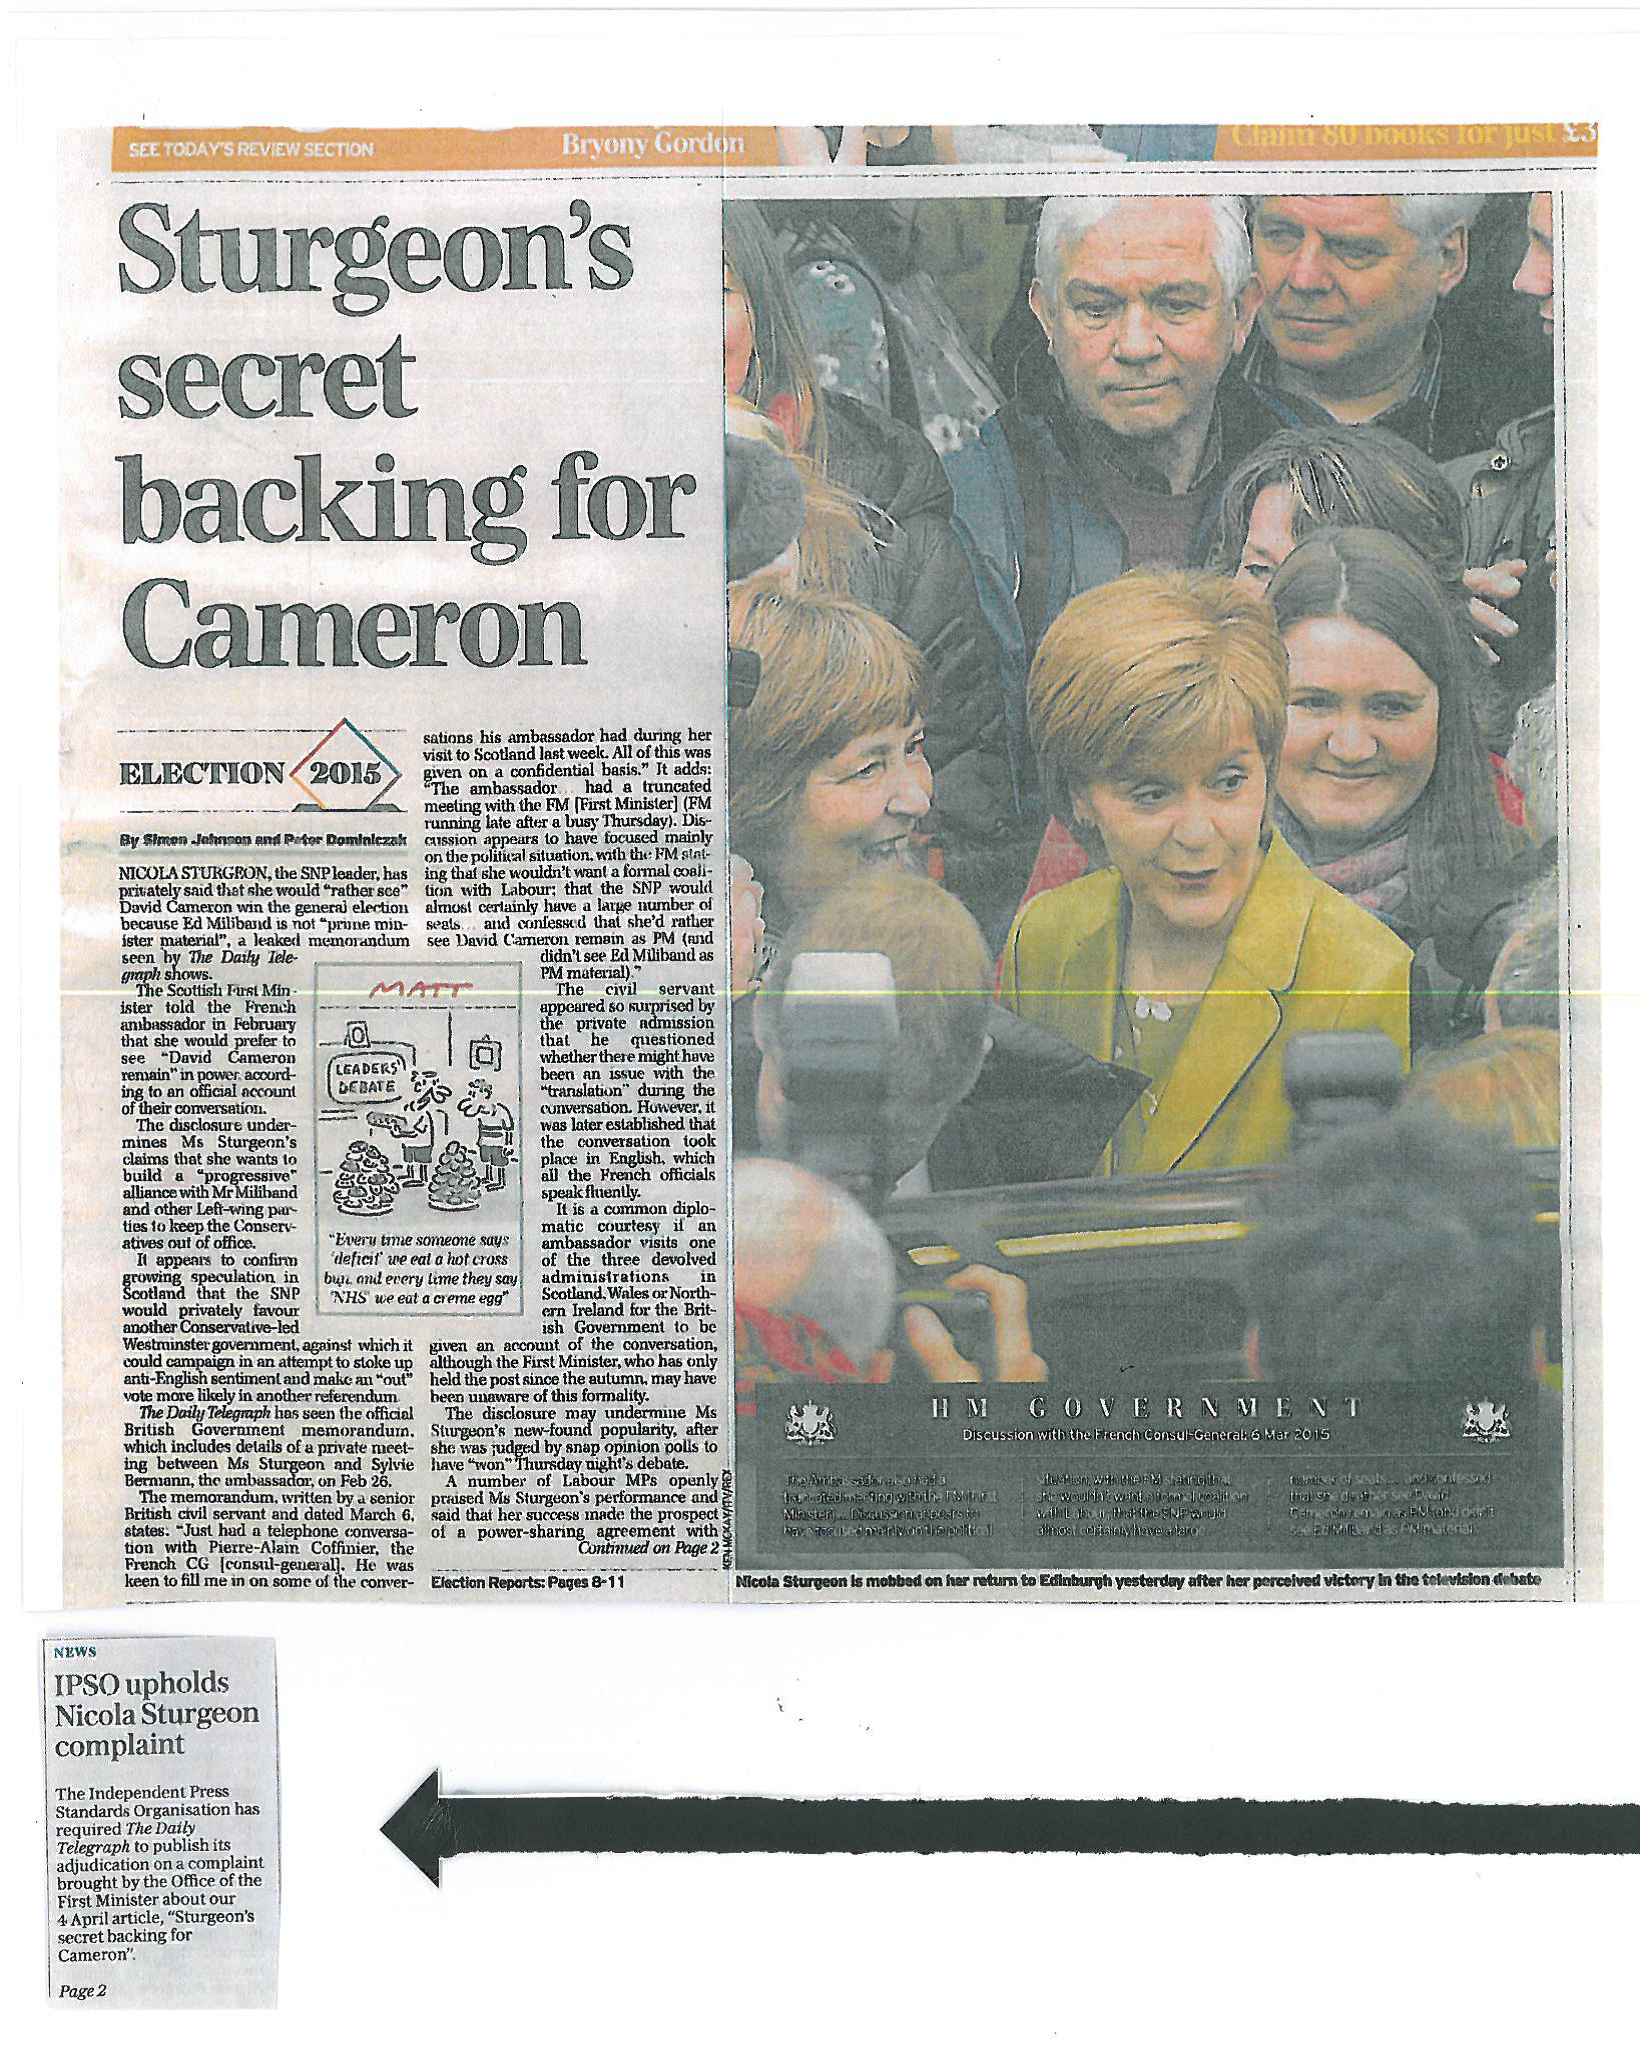 Nicola Sturgeon Telegraph